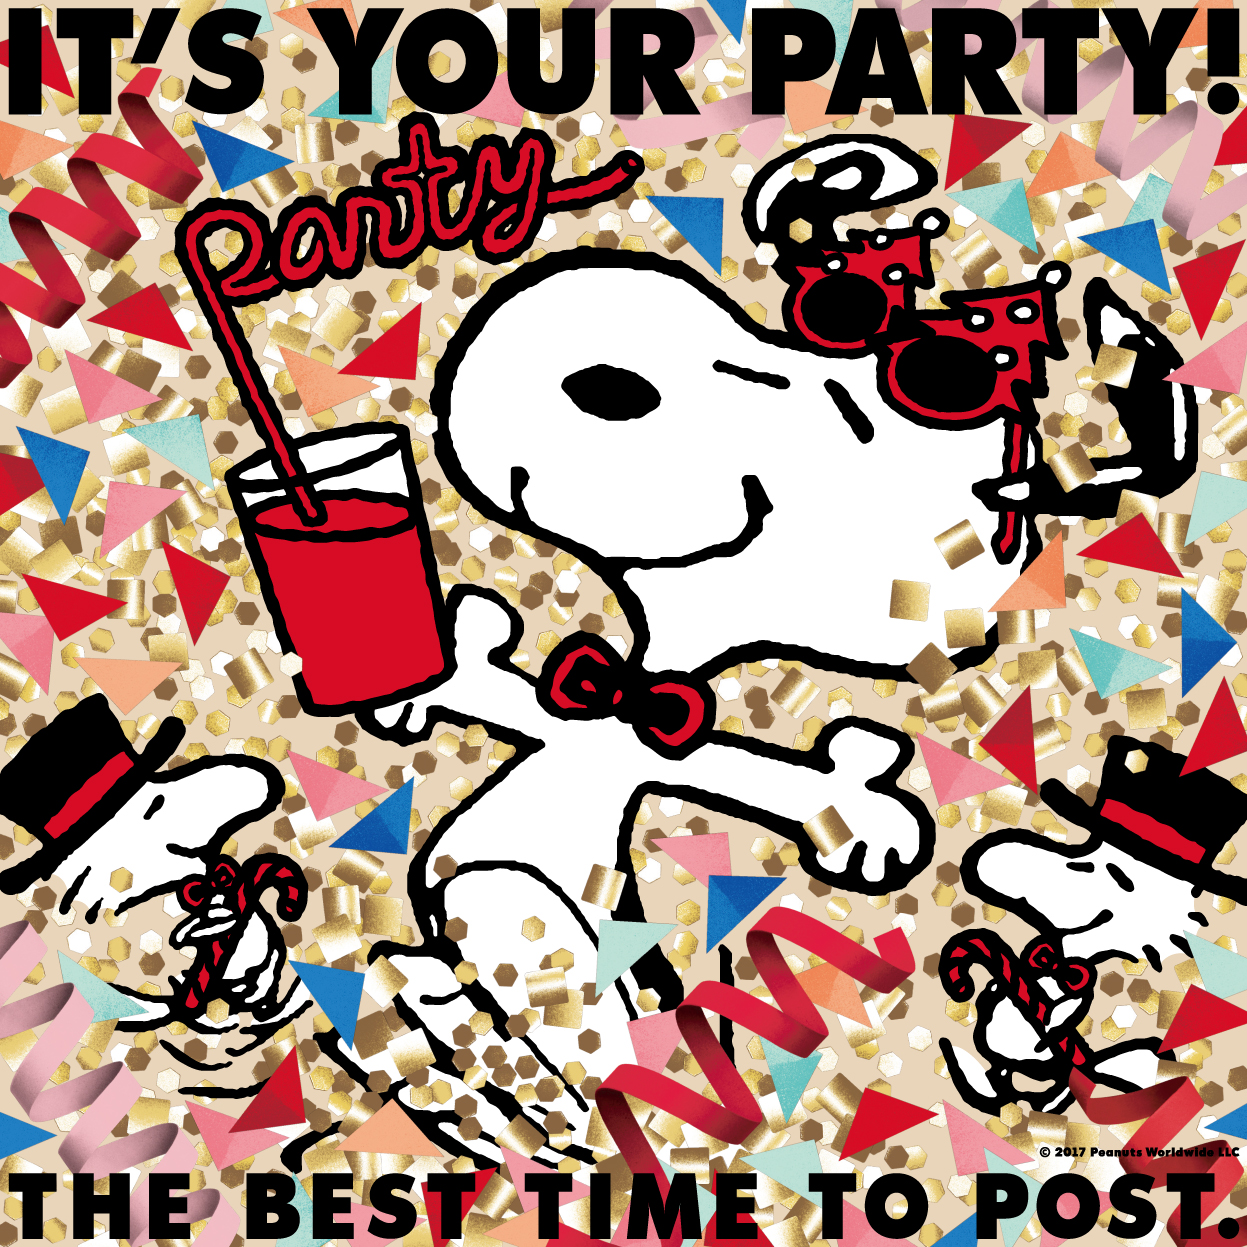 IT'S YOUR PARTY THE BEST TIME TO POST!